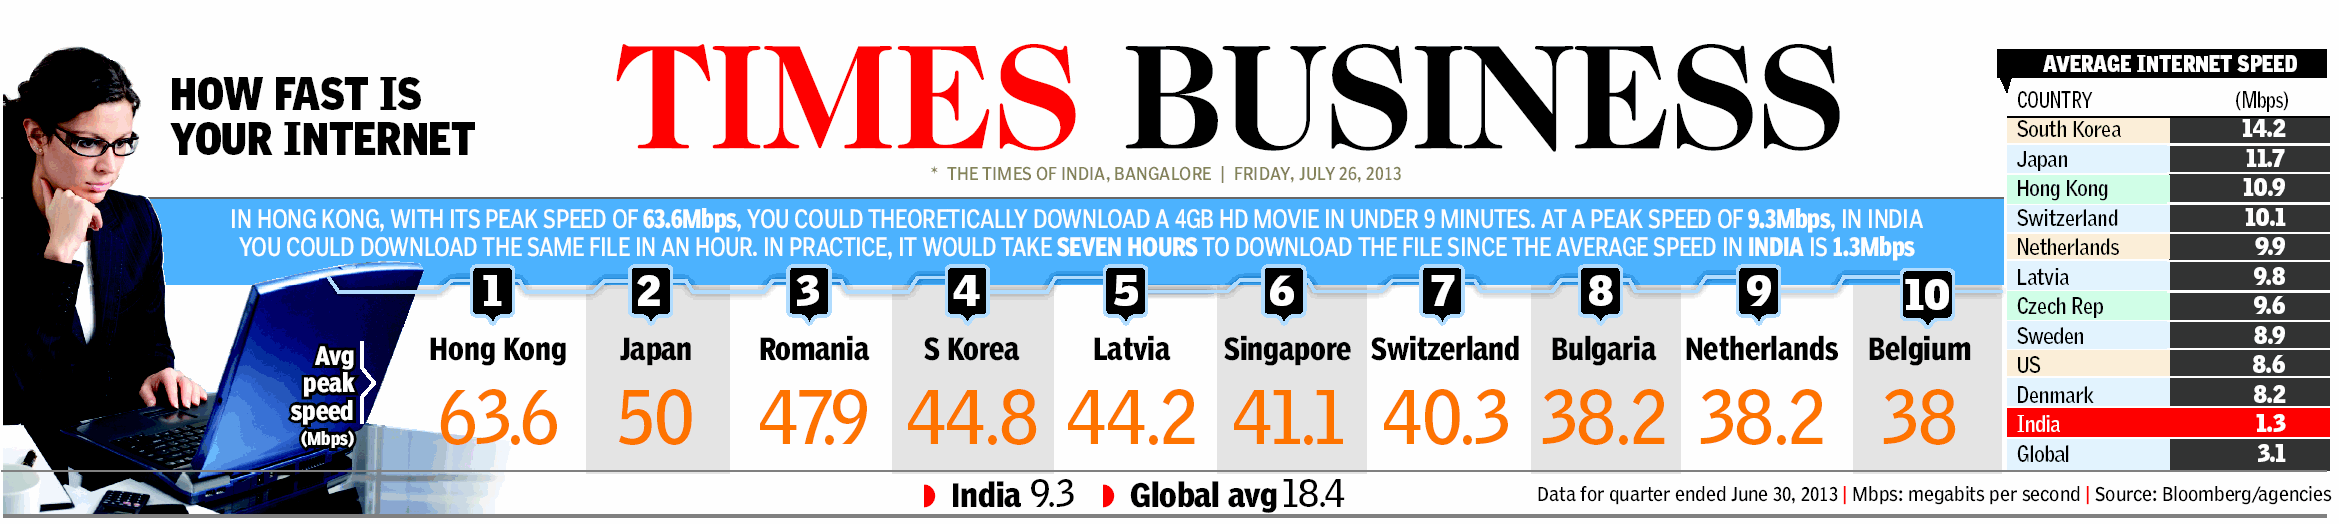 How fast is your internet : hong kong 63.6Mbs, Japan 50 Mbps,India 1.3 Mbps